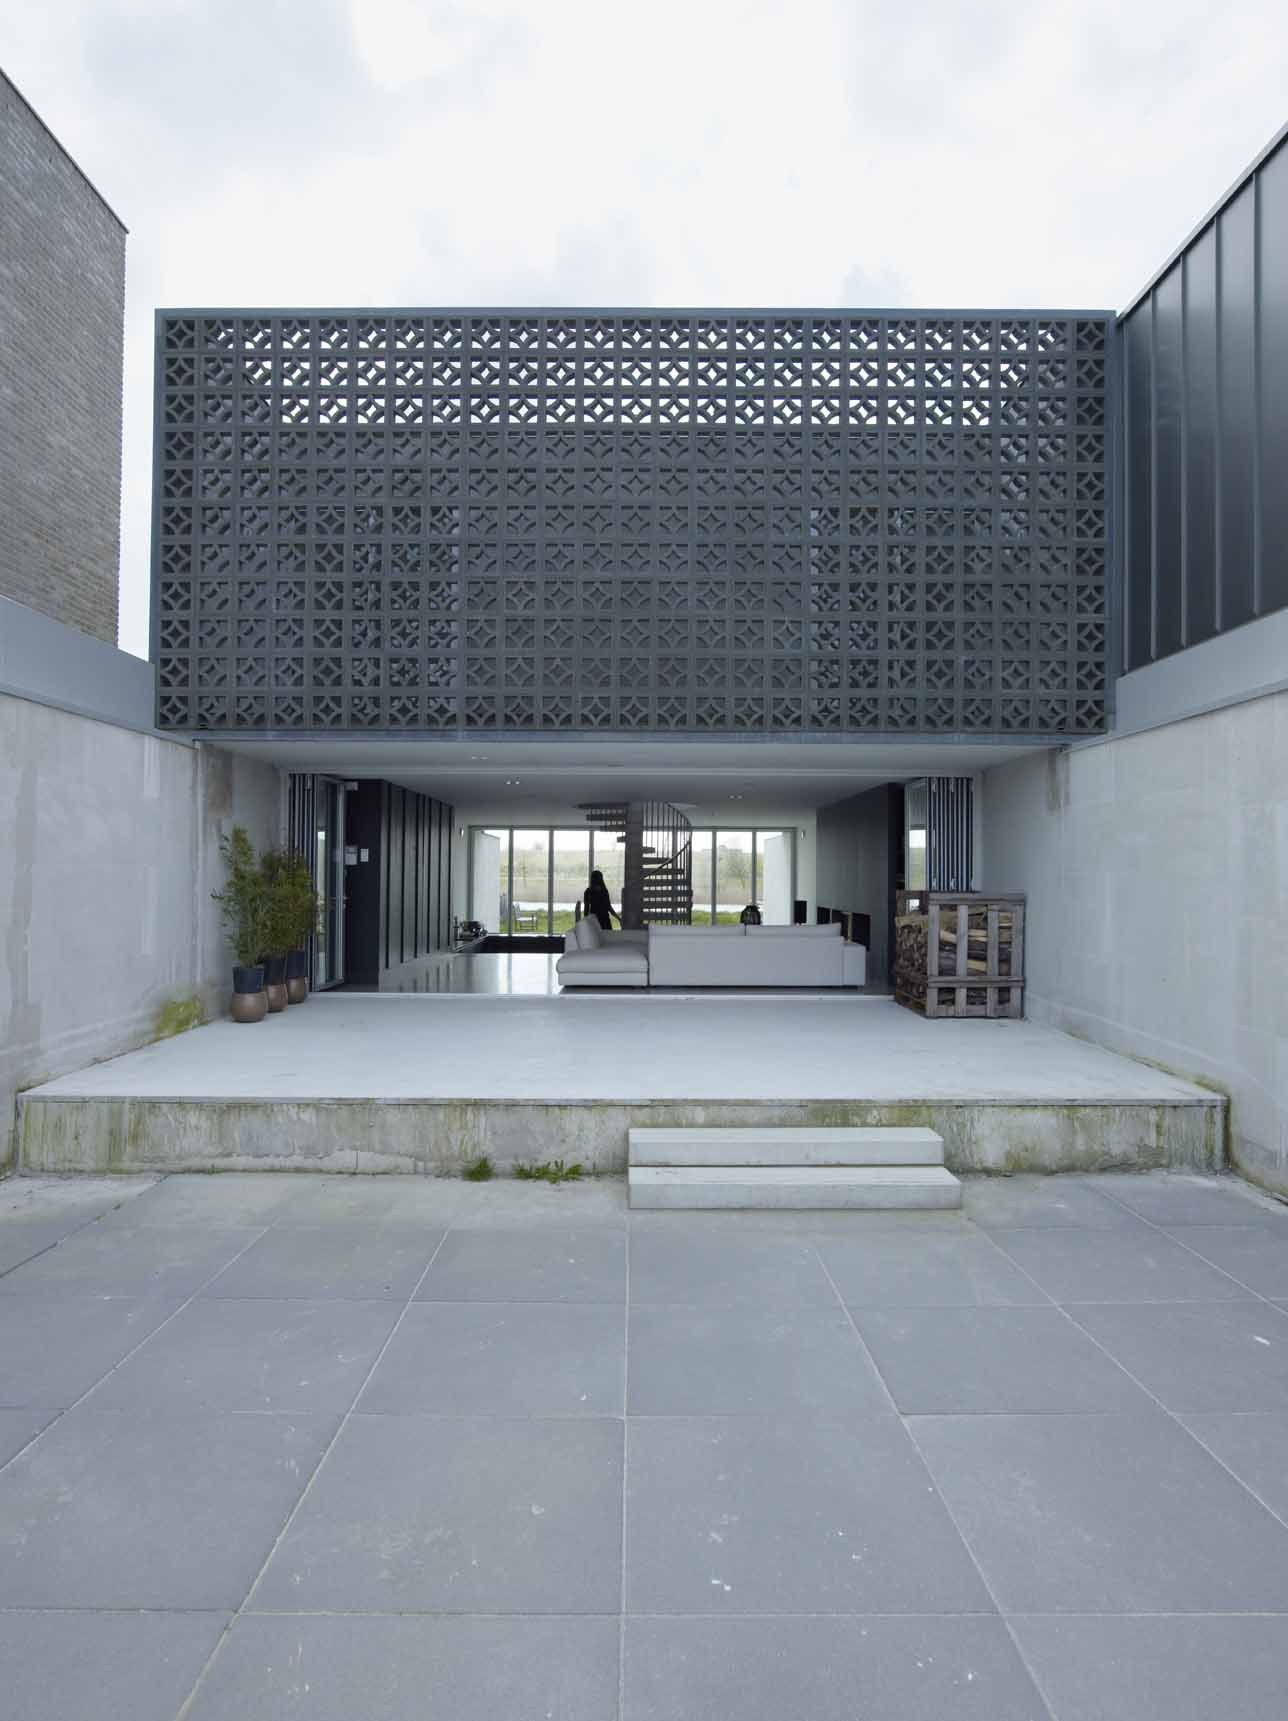 Vmx Architects W House Vmx Architects Archdaily